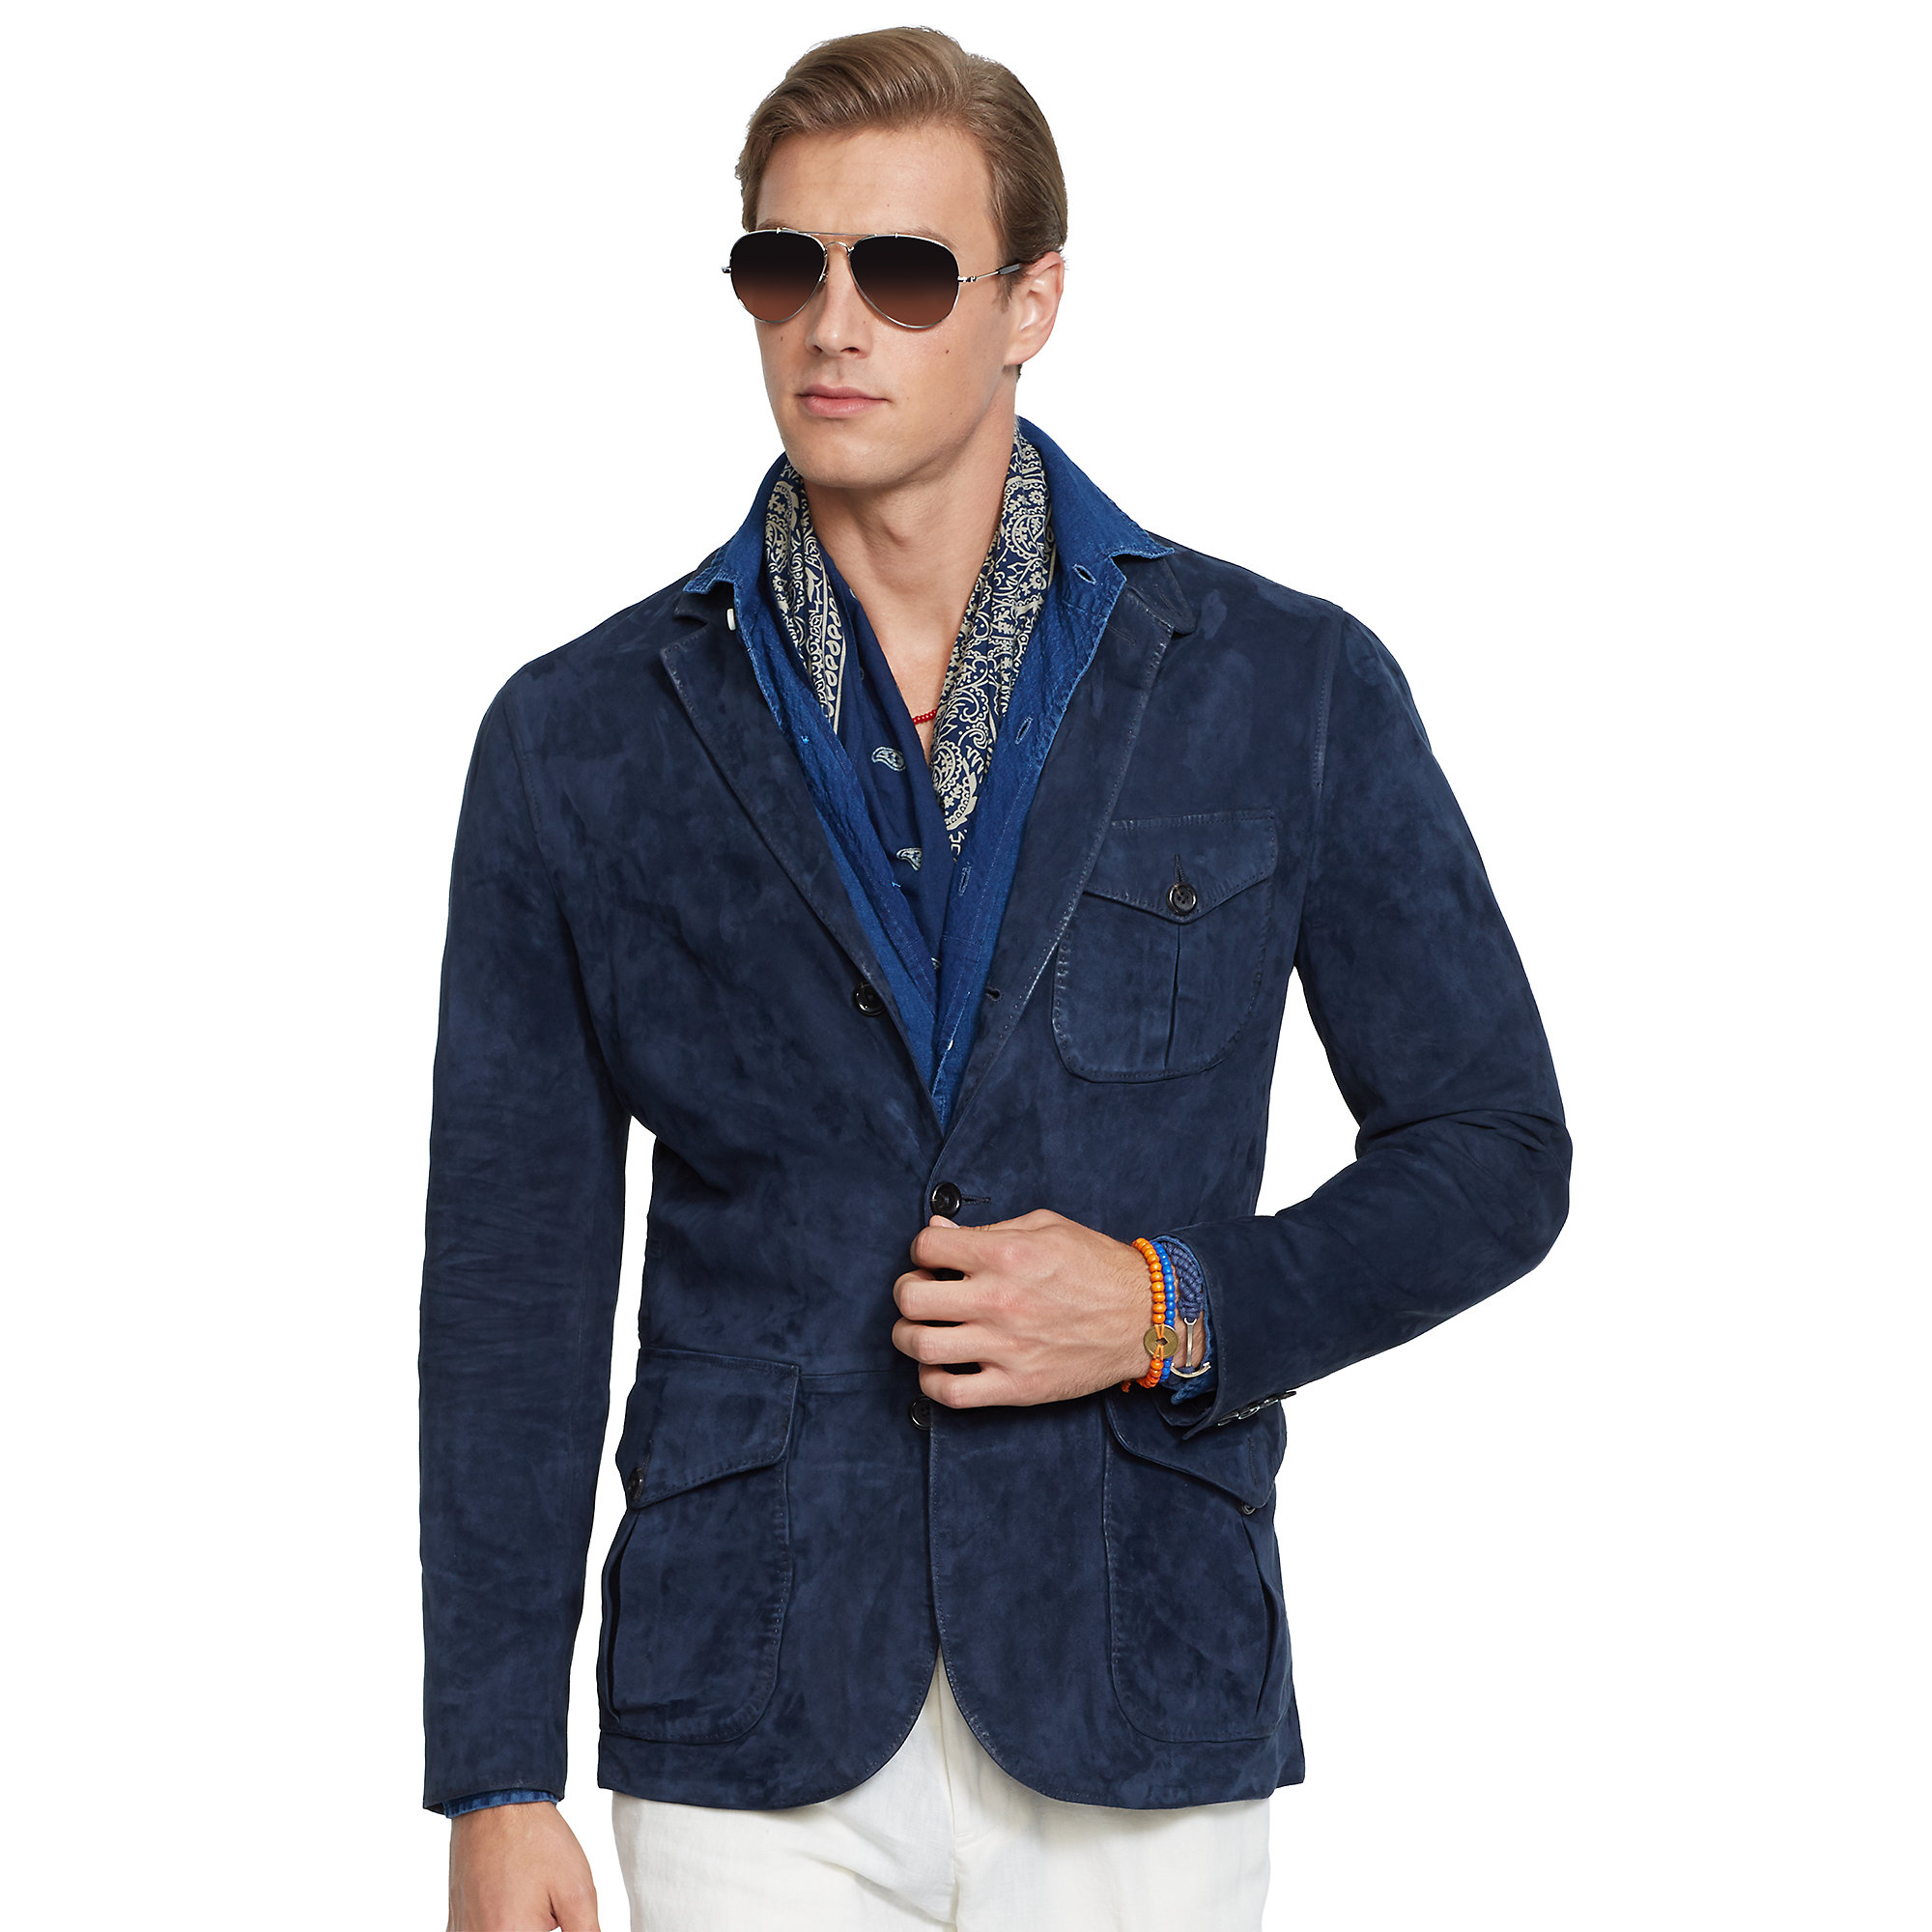 Polo ralph lauren suede utility sport coat in blue for men for Polo shirt with sport coat